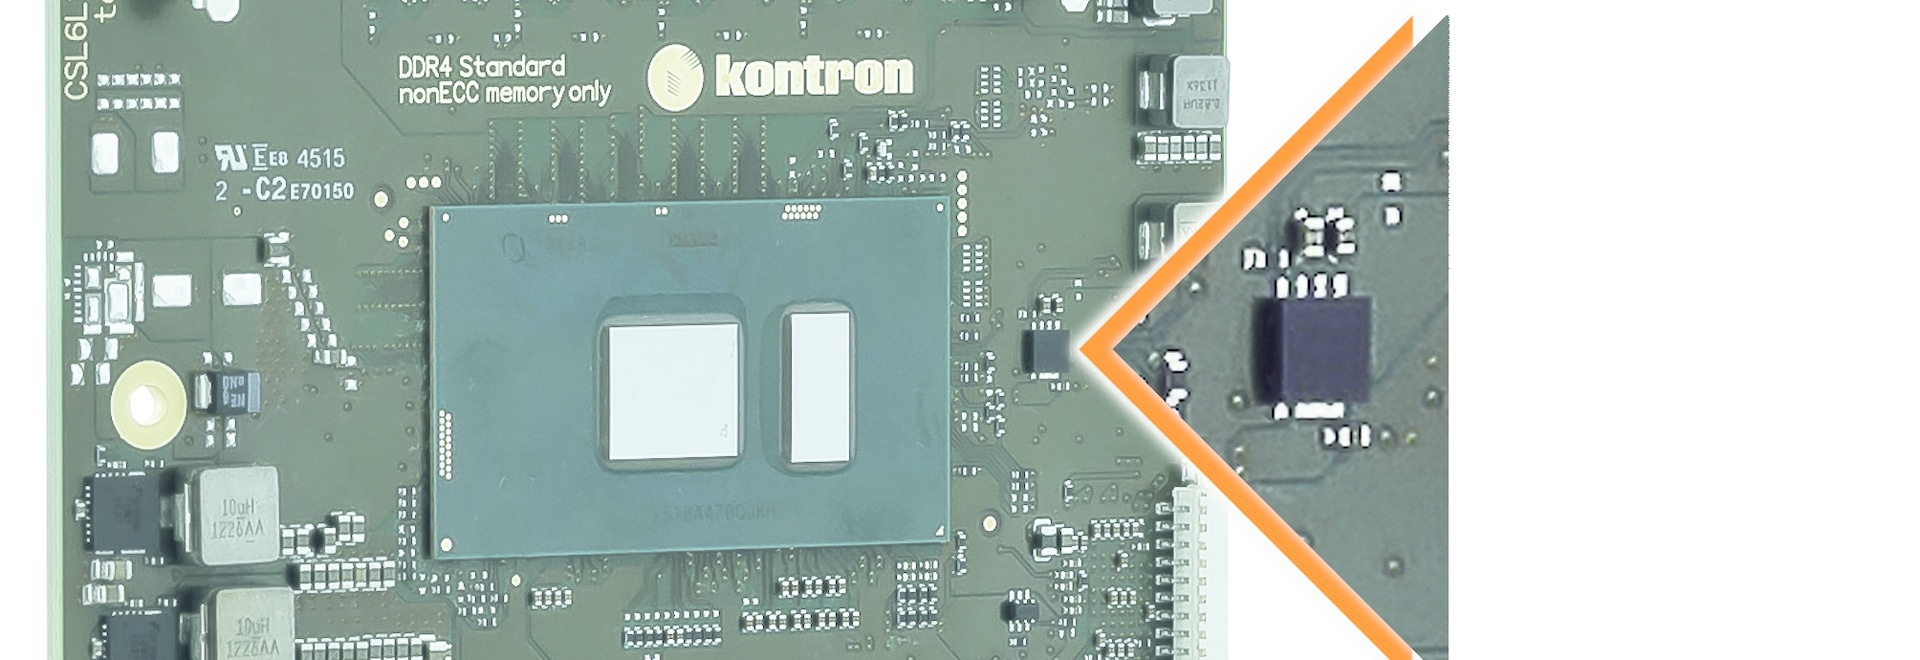 Kontron first to offer embedded hardware security solution product line providing full protection capabilities off-the-shelf